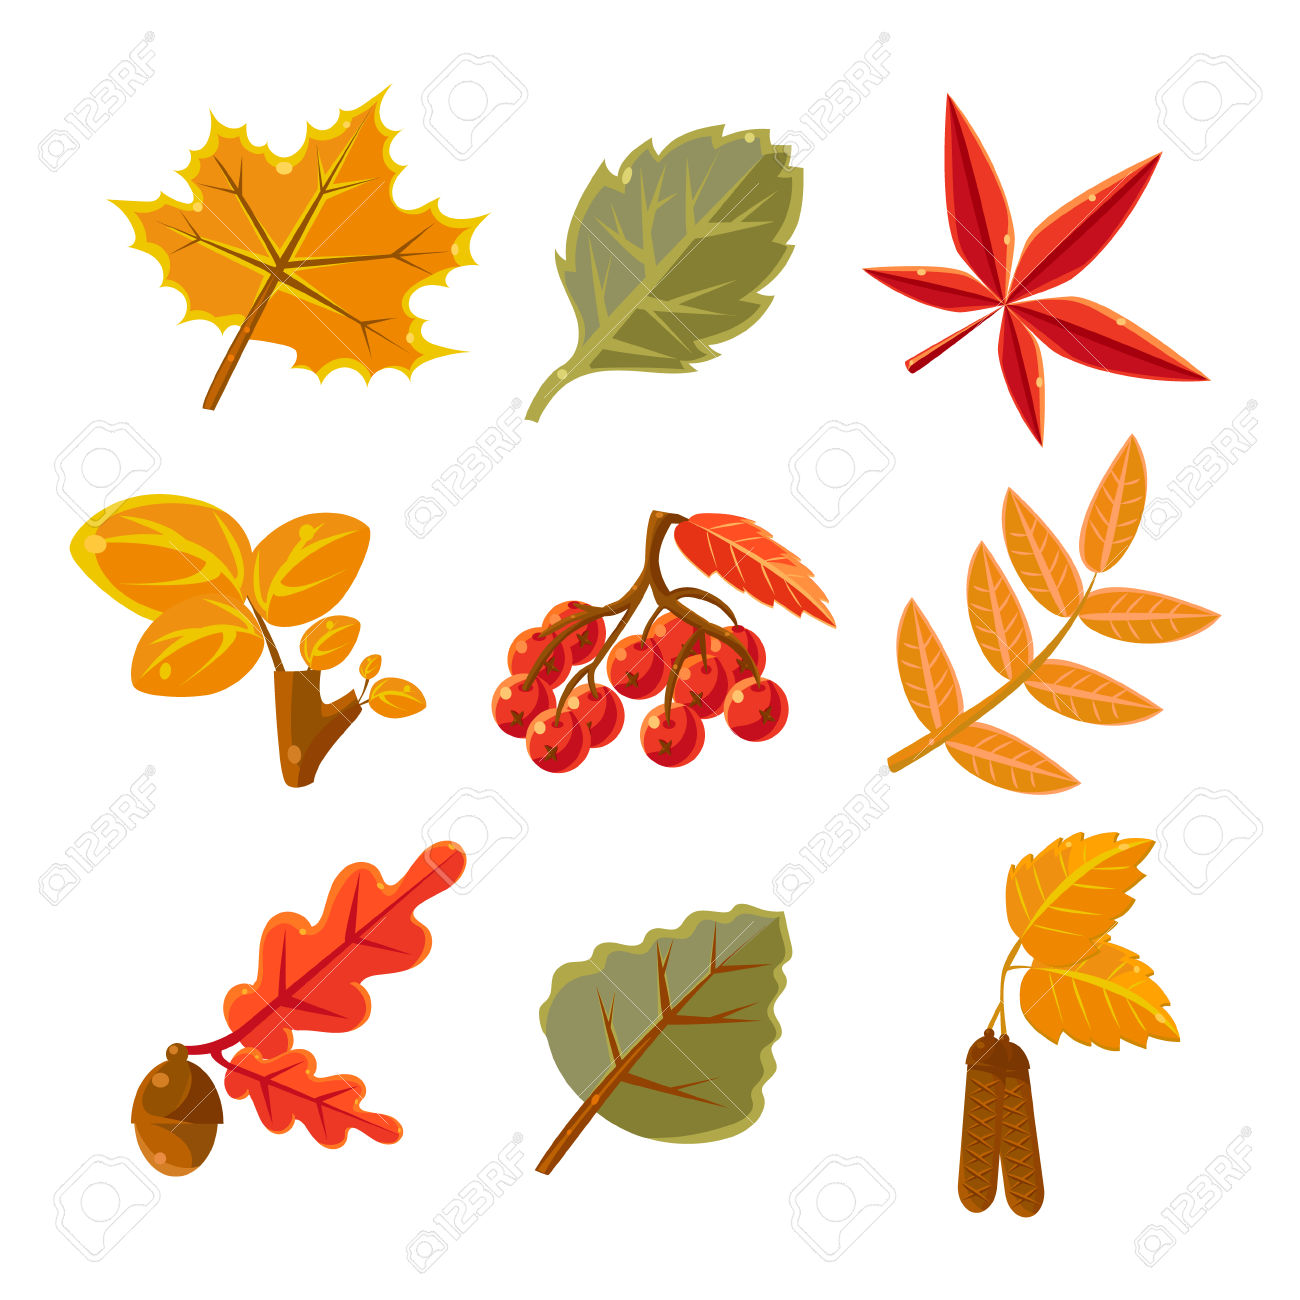 Autumn Common Forest Leaves Set Flat Vector Design Isolated Items.